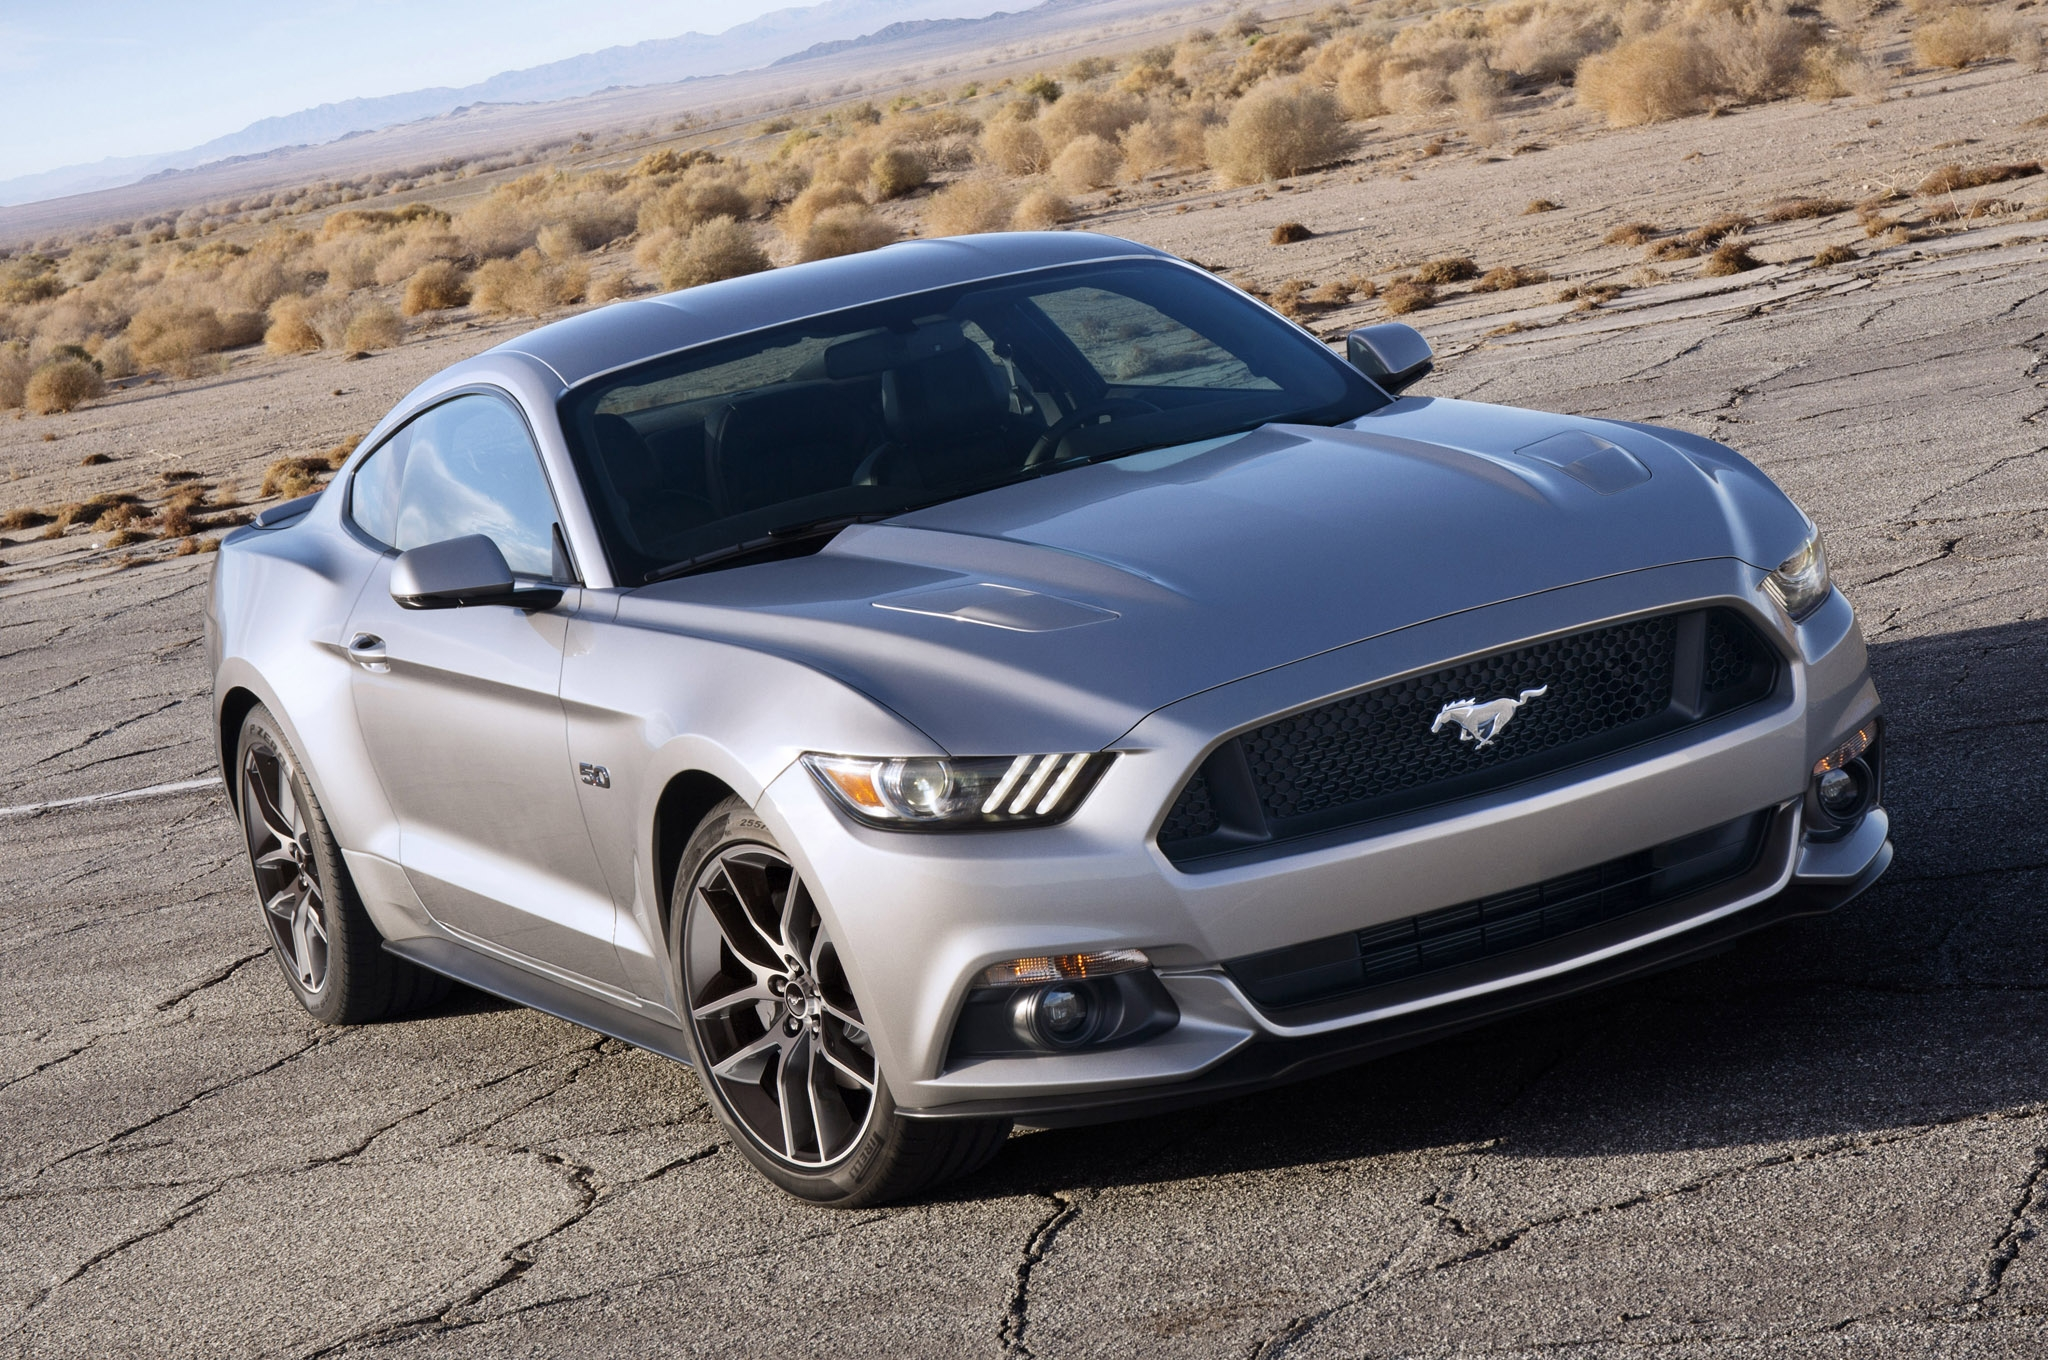 2015 Ford Mustang #9